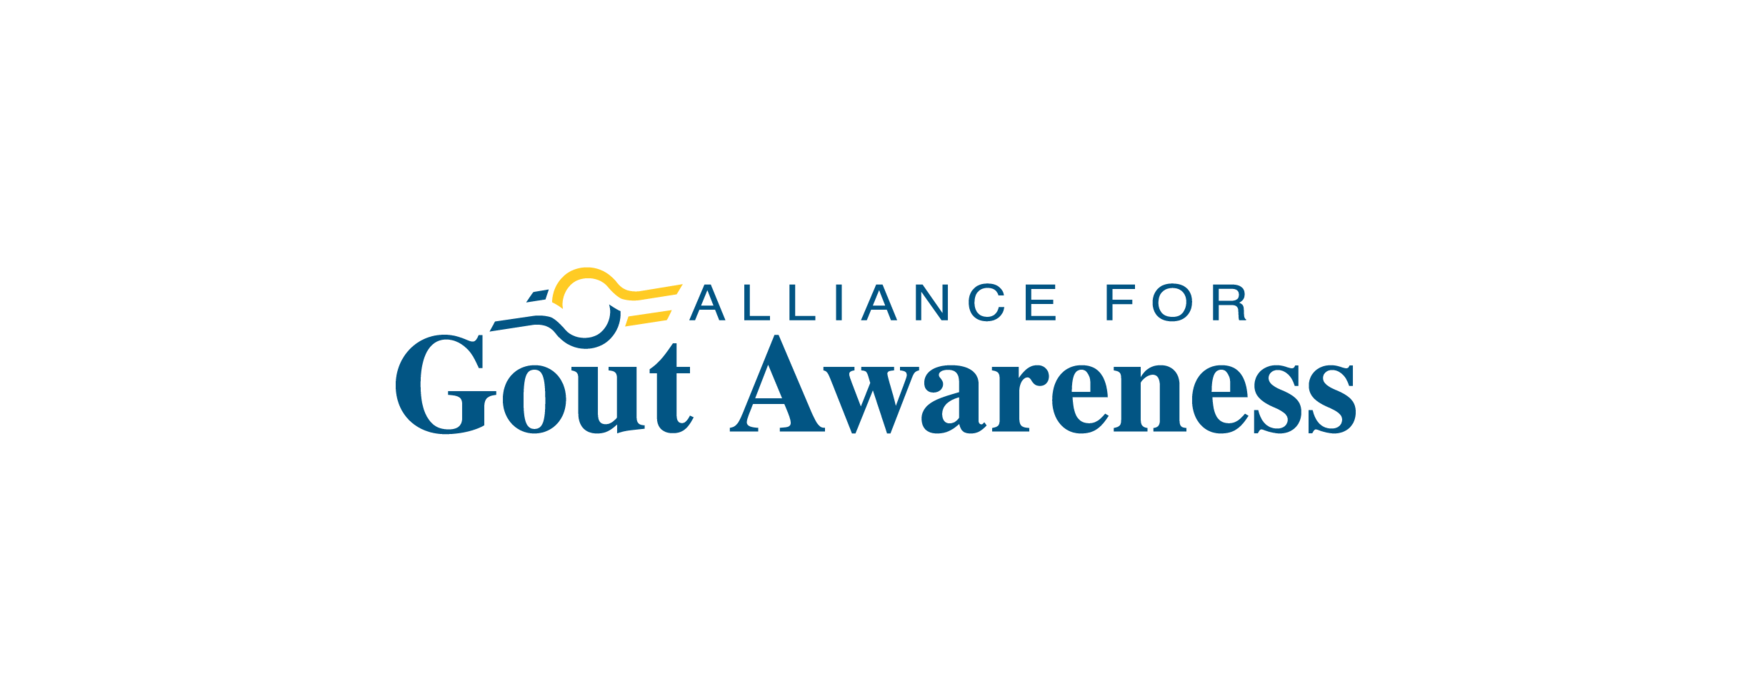 The RNS joins the Alliance for Gout Awareness